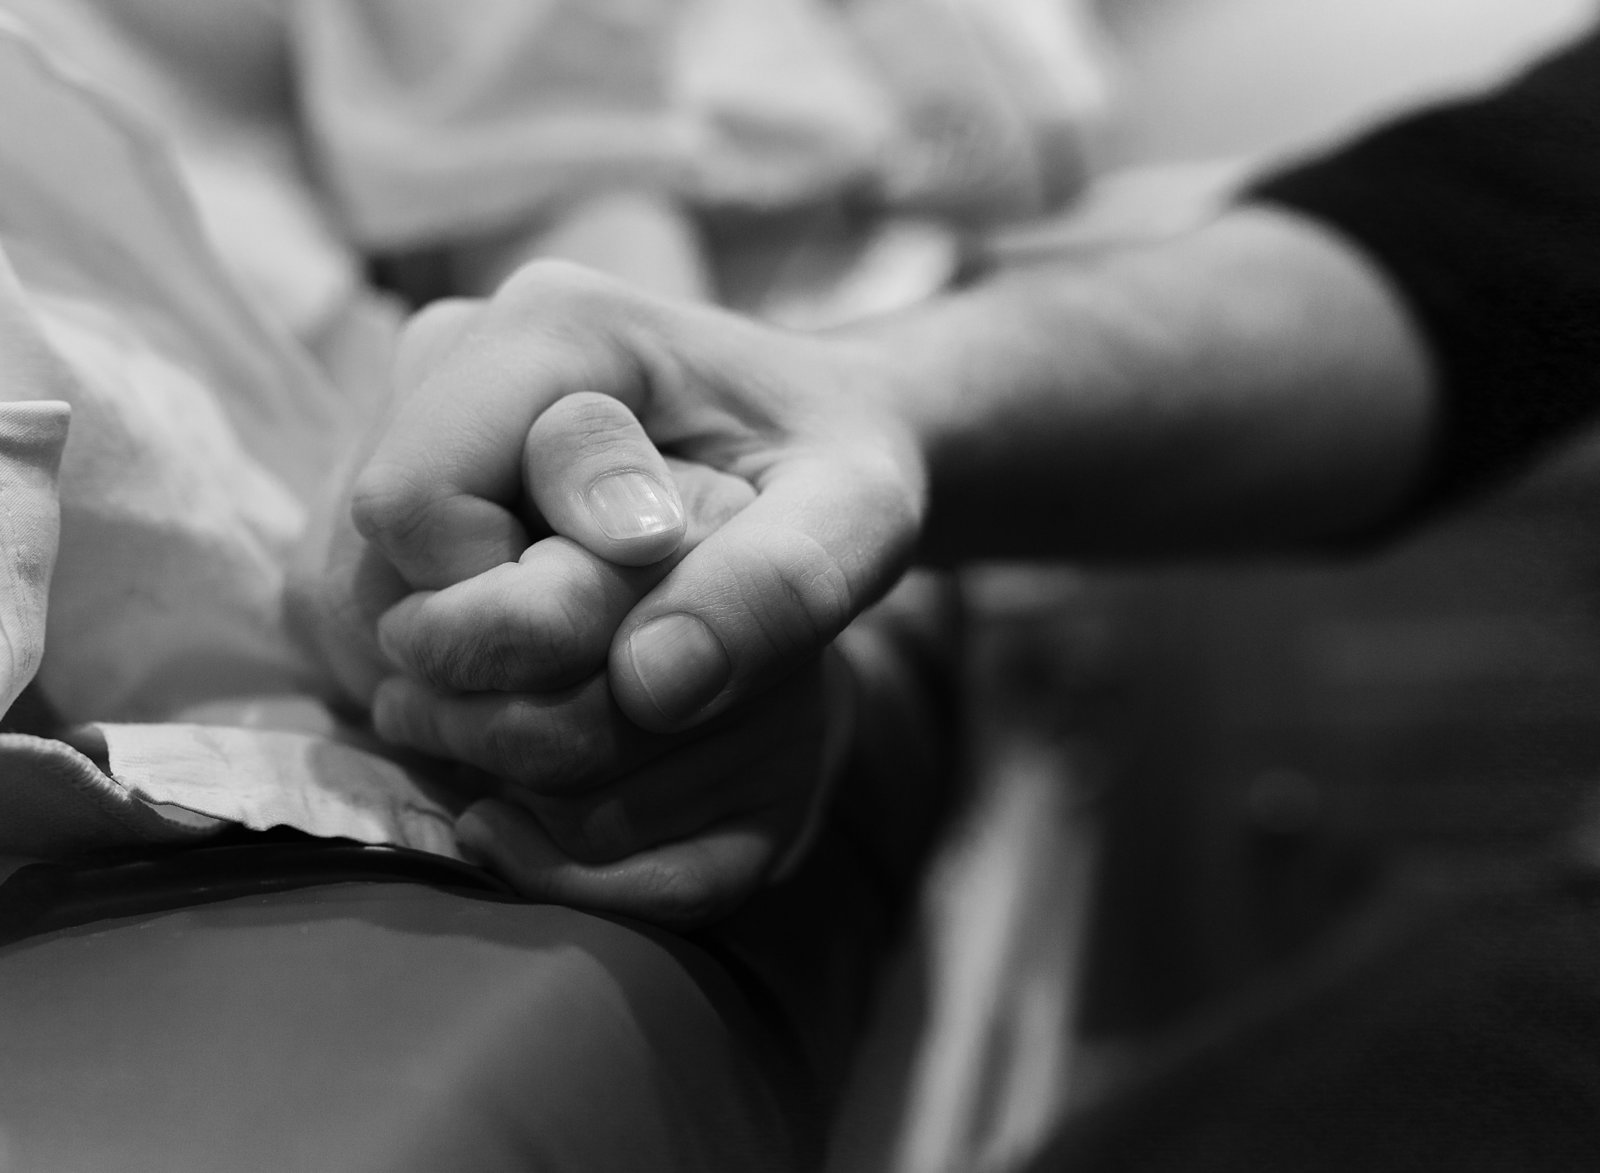 charlotte birth photographer jamie lucido captures a beautiful and powerful image of mother and father holding hands during the birth of their child